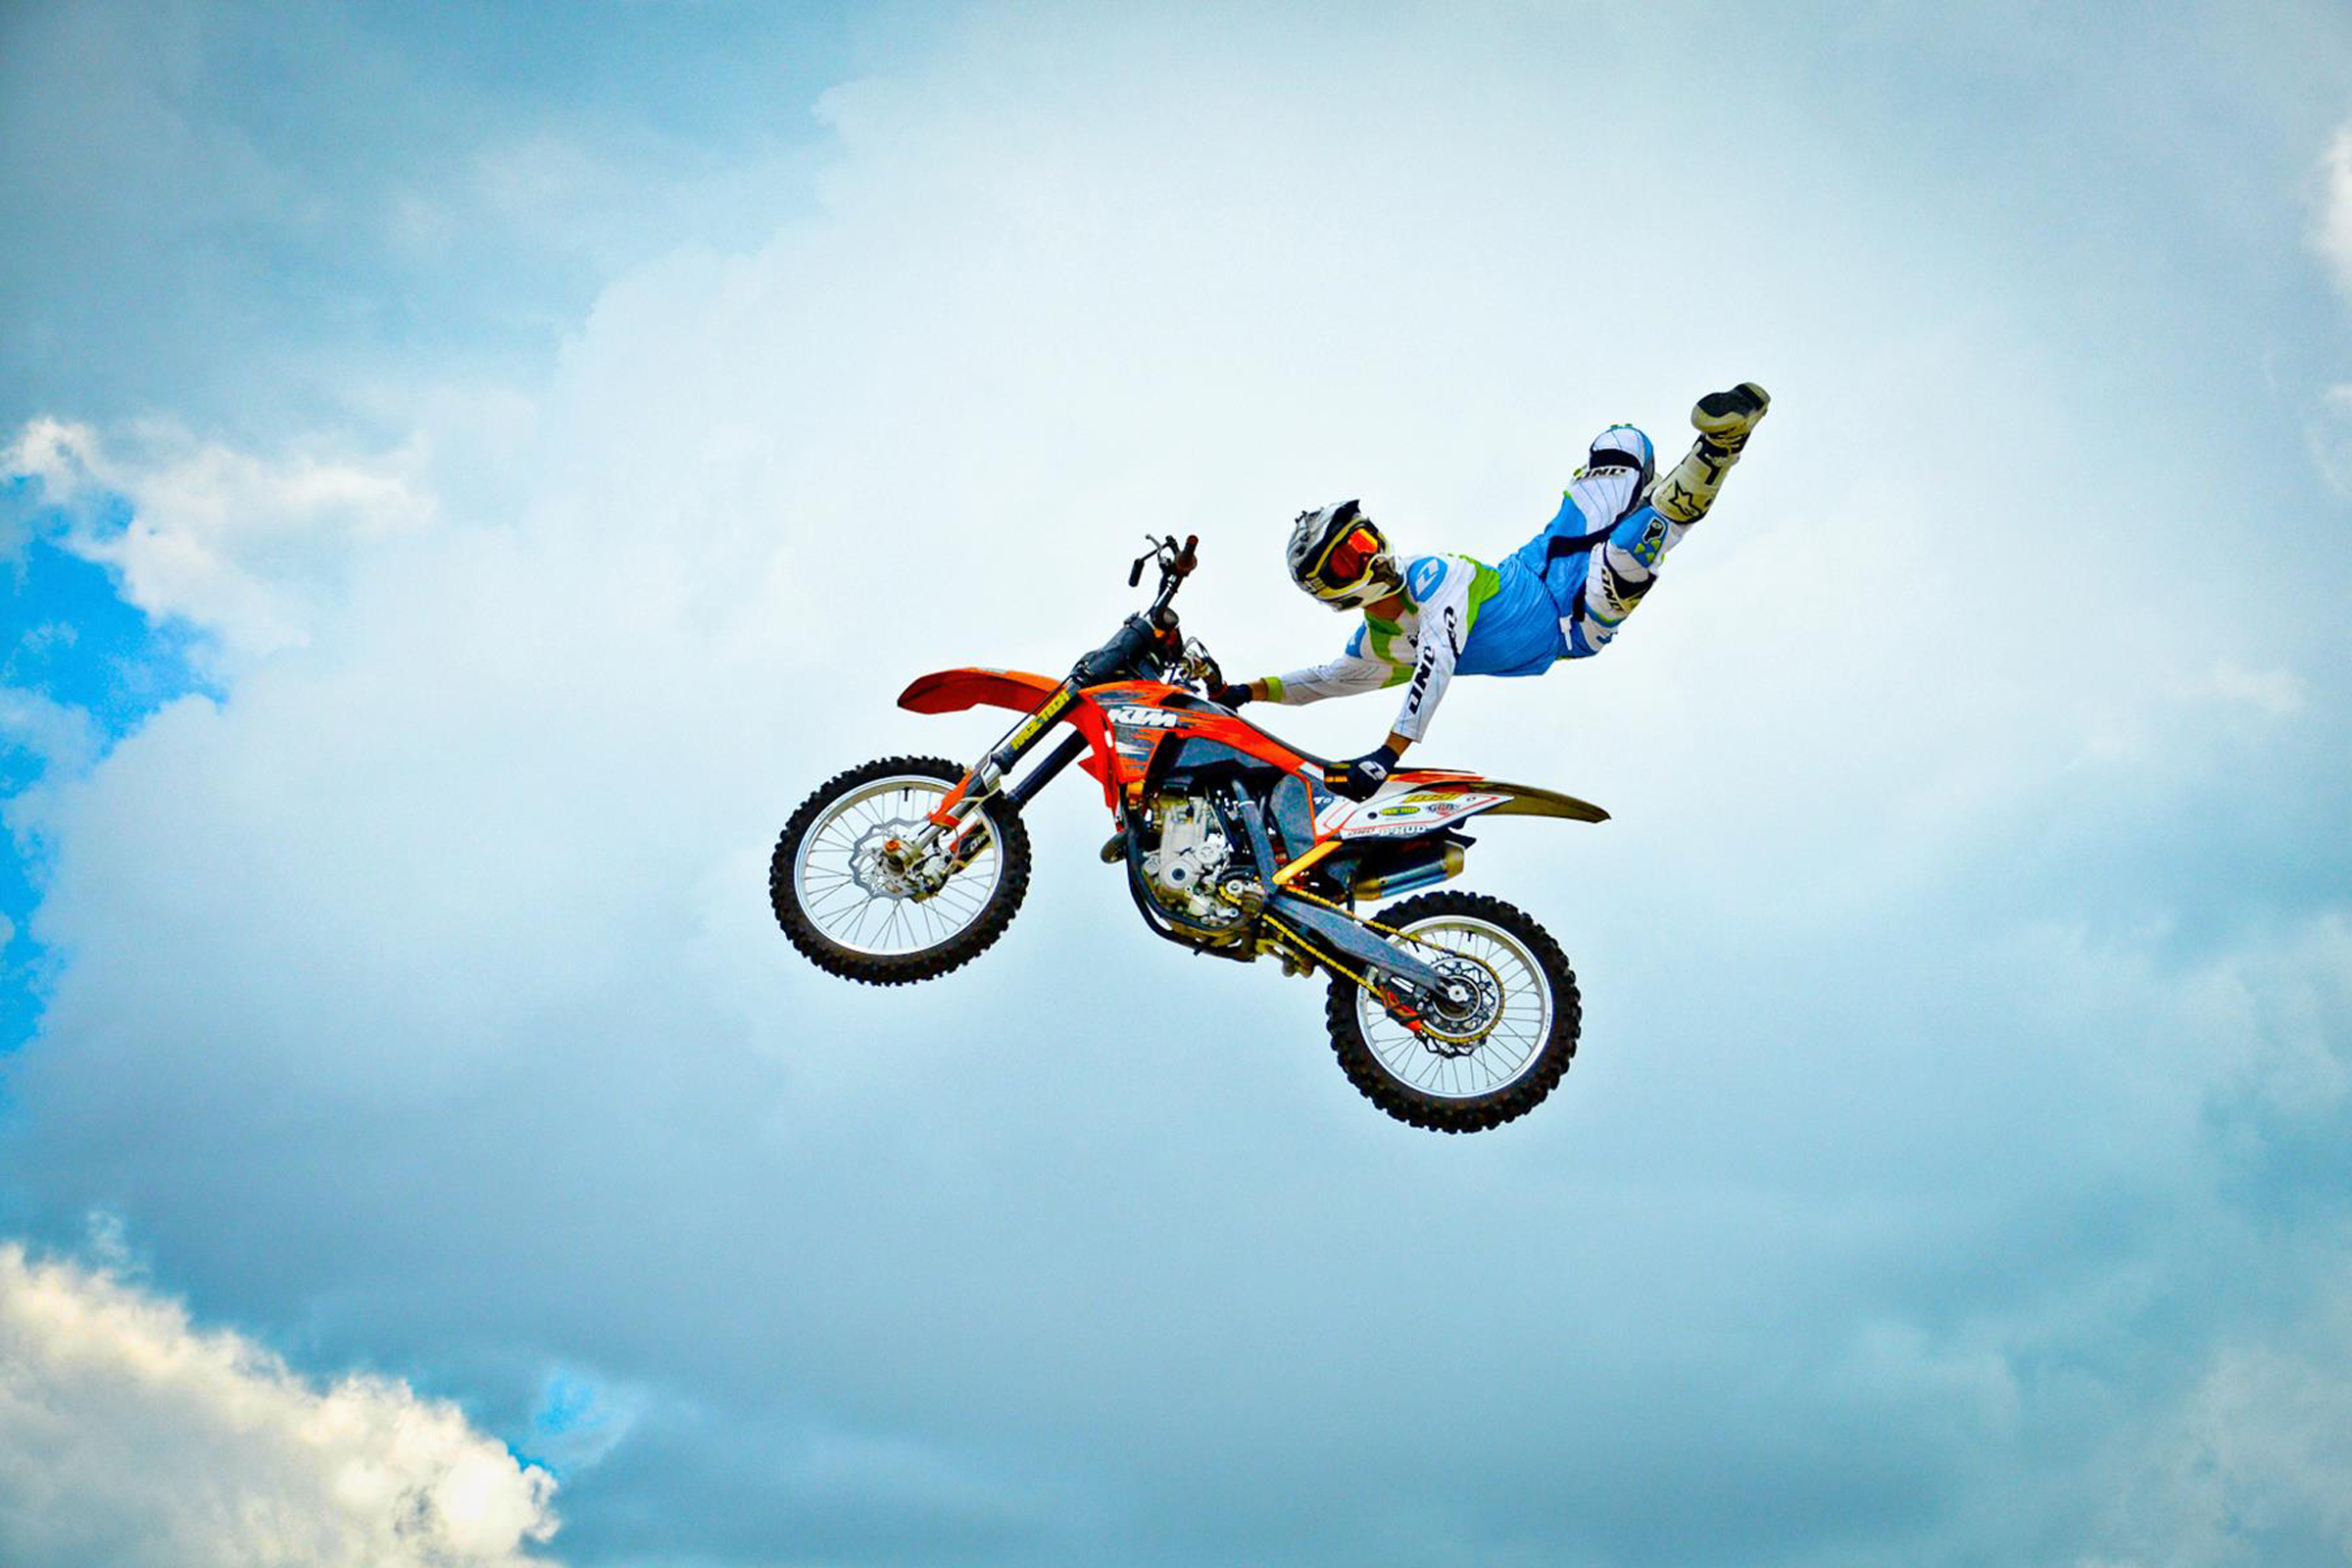 motocross demonstration wows crowd at wpafb 445th airlift wing